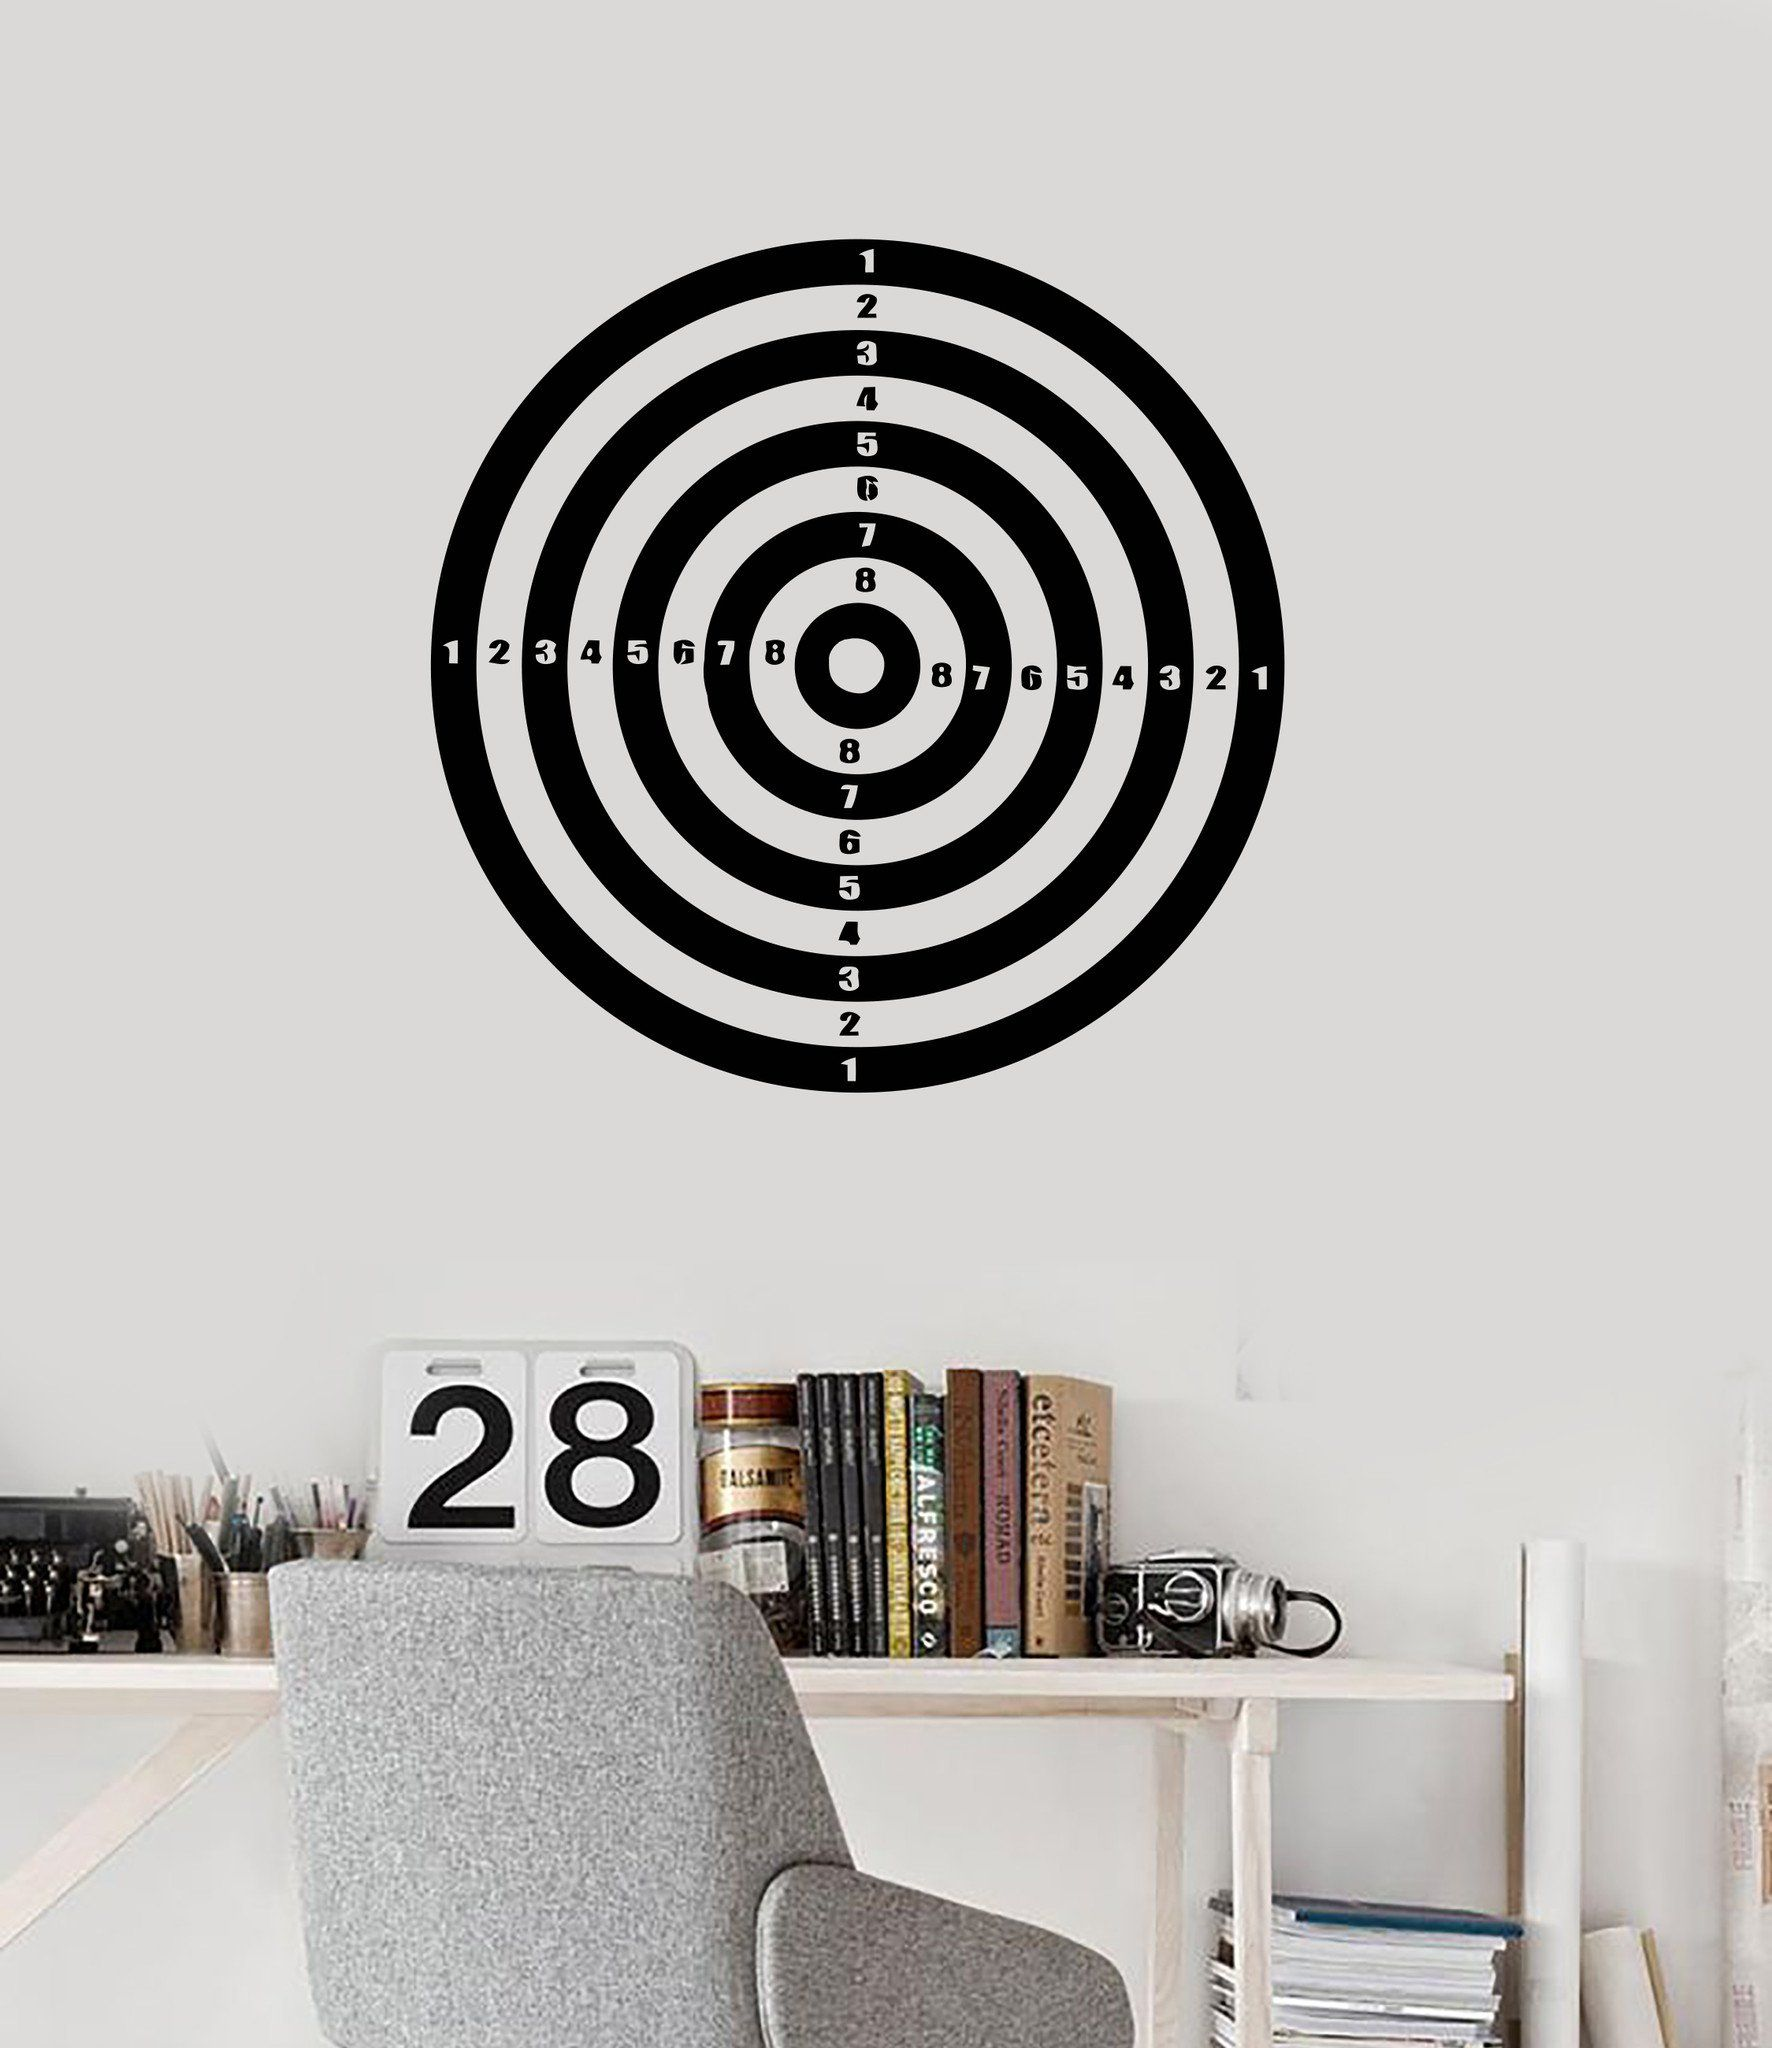 Wall Stickers Vinyl Decal Darts Target for Living Room ...